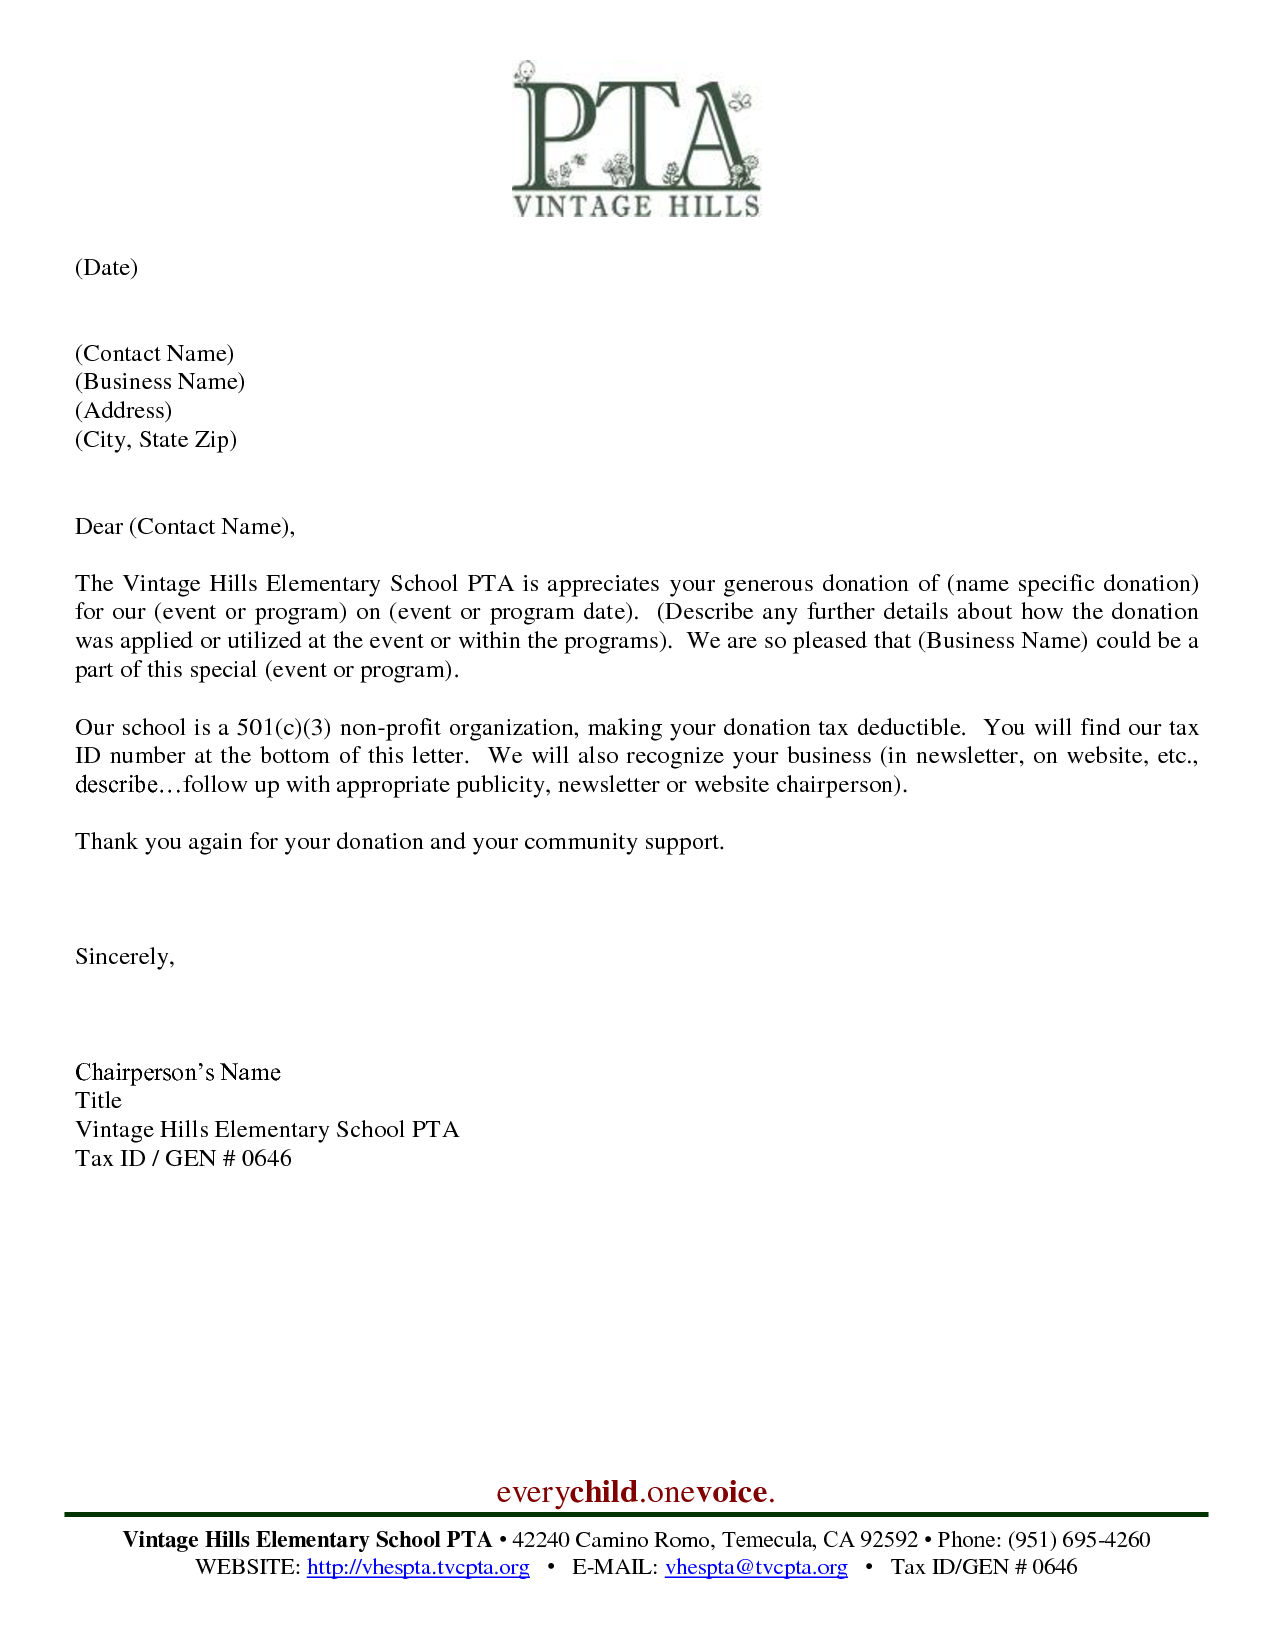 Non Profit Donation Request Letter Template - Church Thank You Letter for Donation Samples